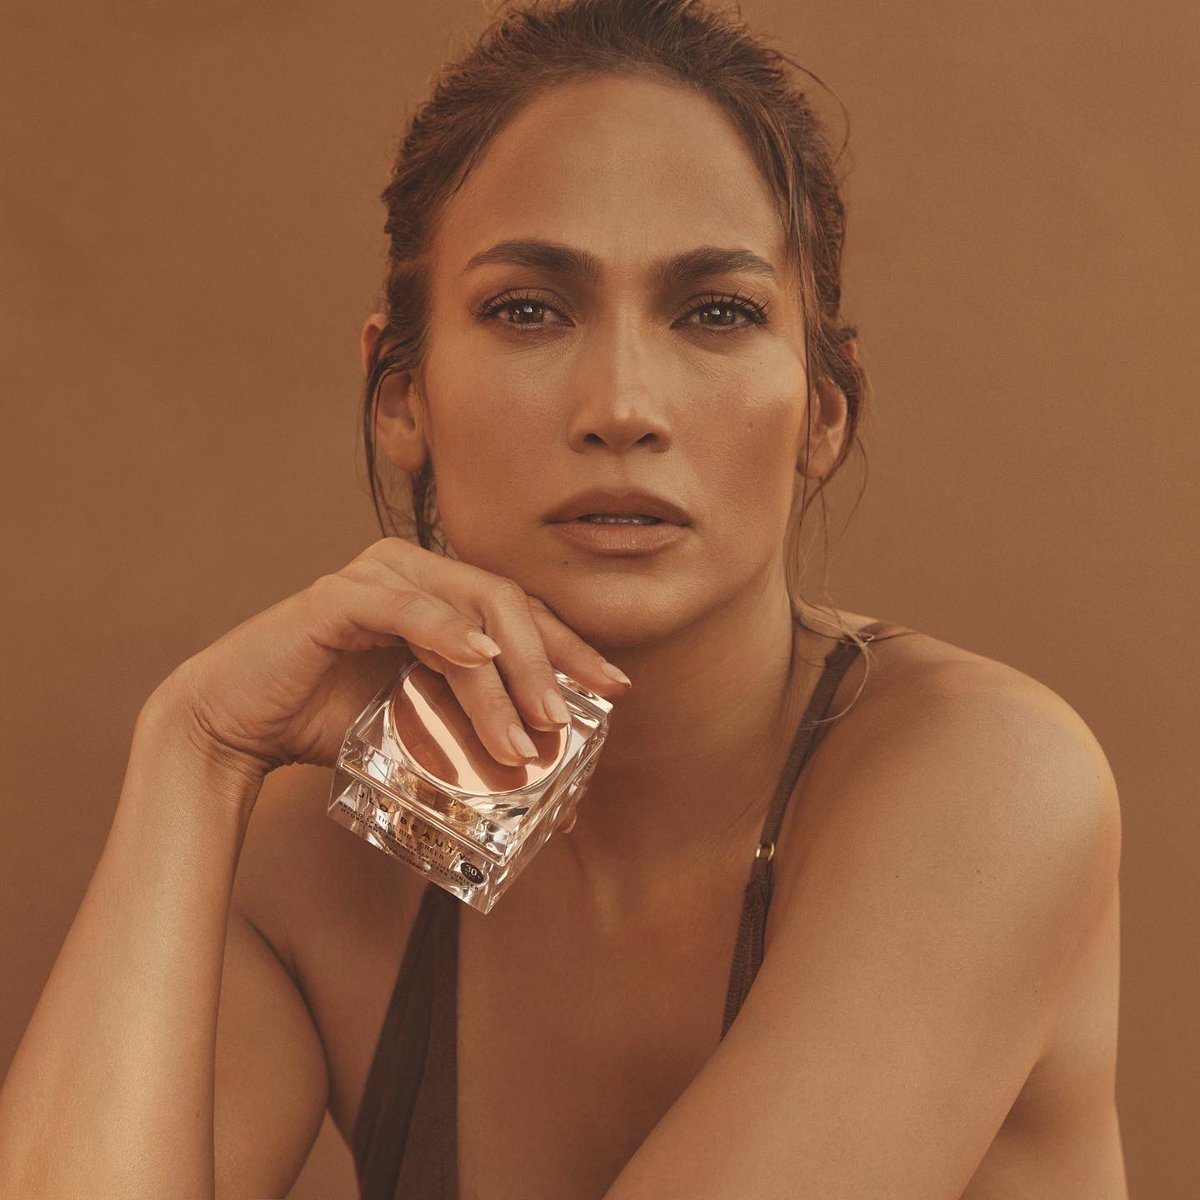 """""""Healthy, radiant skin starts with SPF."""" - @jlo  And that right there is a FACT. 👏 Your morning skincare routine isn't complete without THAT BIG SCREEN SPF 30 Moisturizer. Shop #JLOBEAUTY:"""